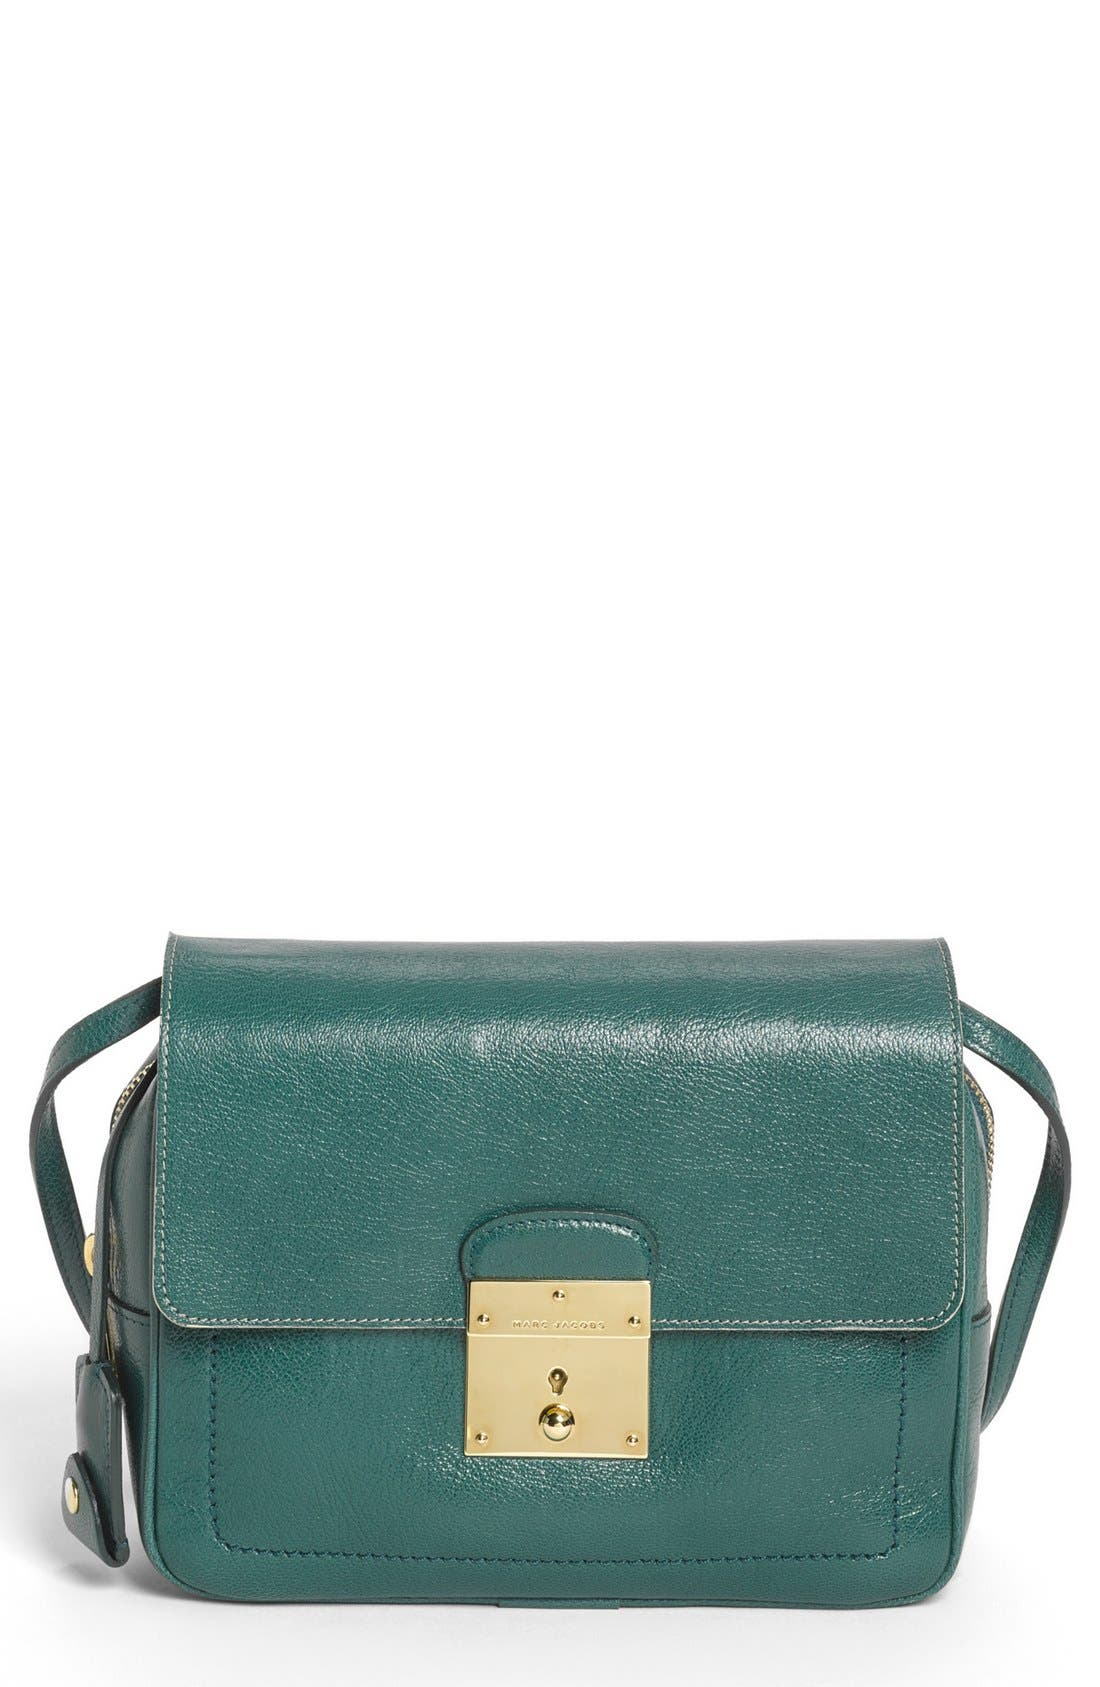 Alternate Image 1 Selected - MARC JACOBS '1984' Leather Camera Bag